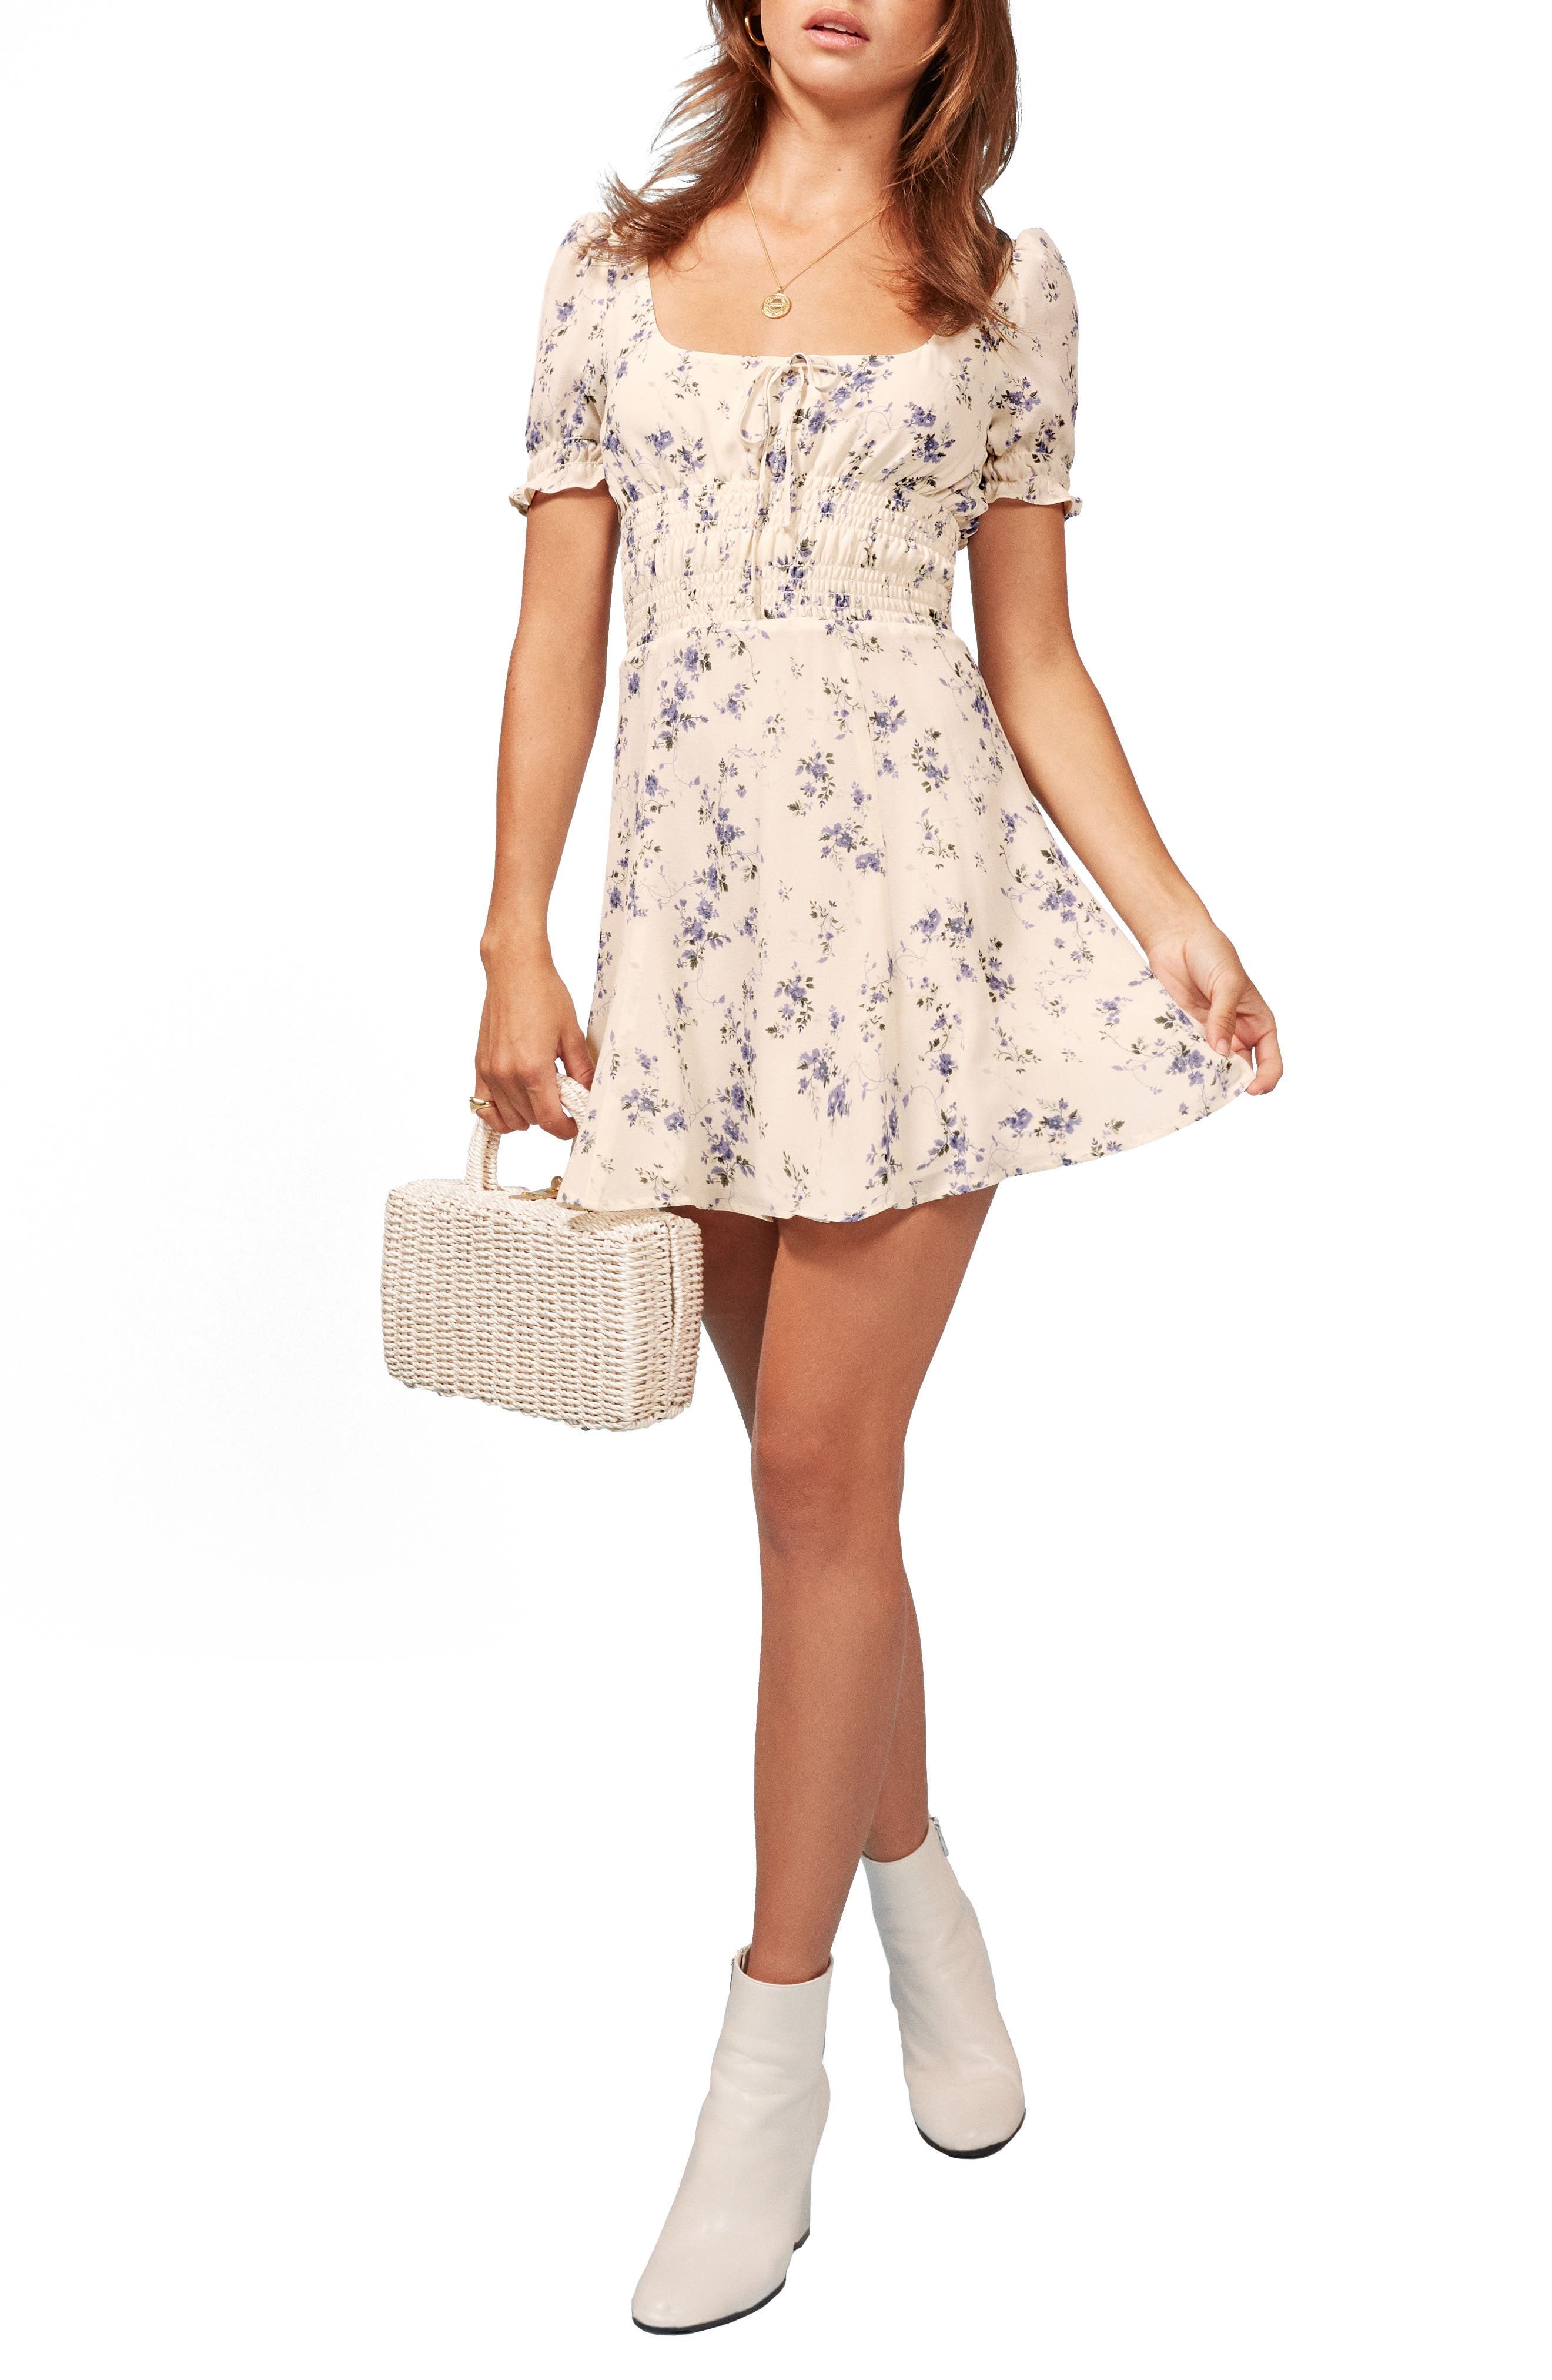 REFORMATION Linley Smocked Minidress, Main, color, 100